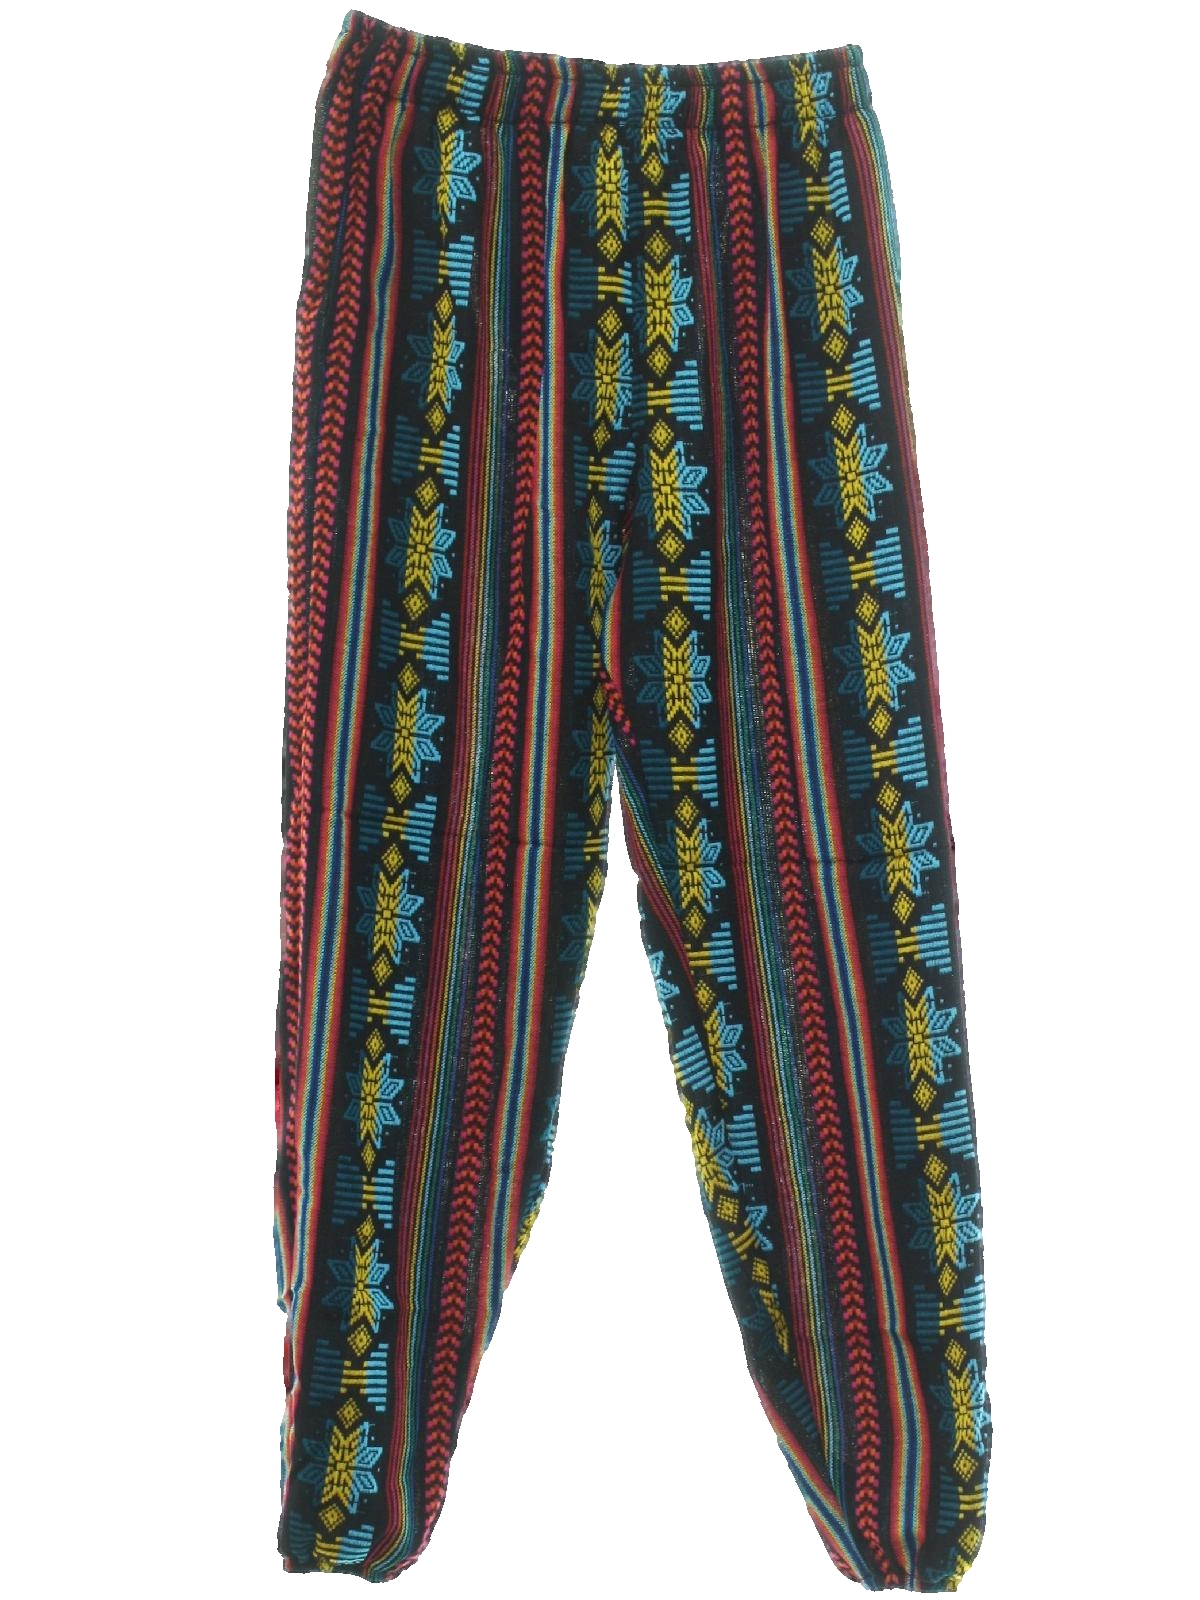 80 u0026 39 s reproduction pants  80s style  made recently